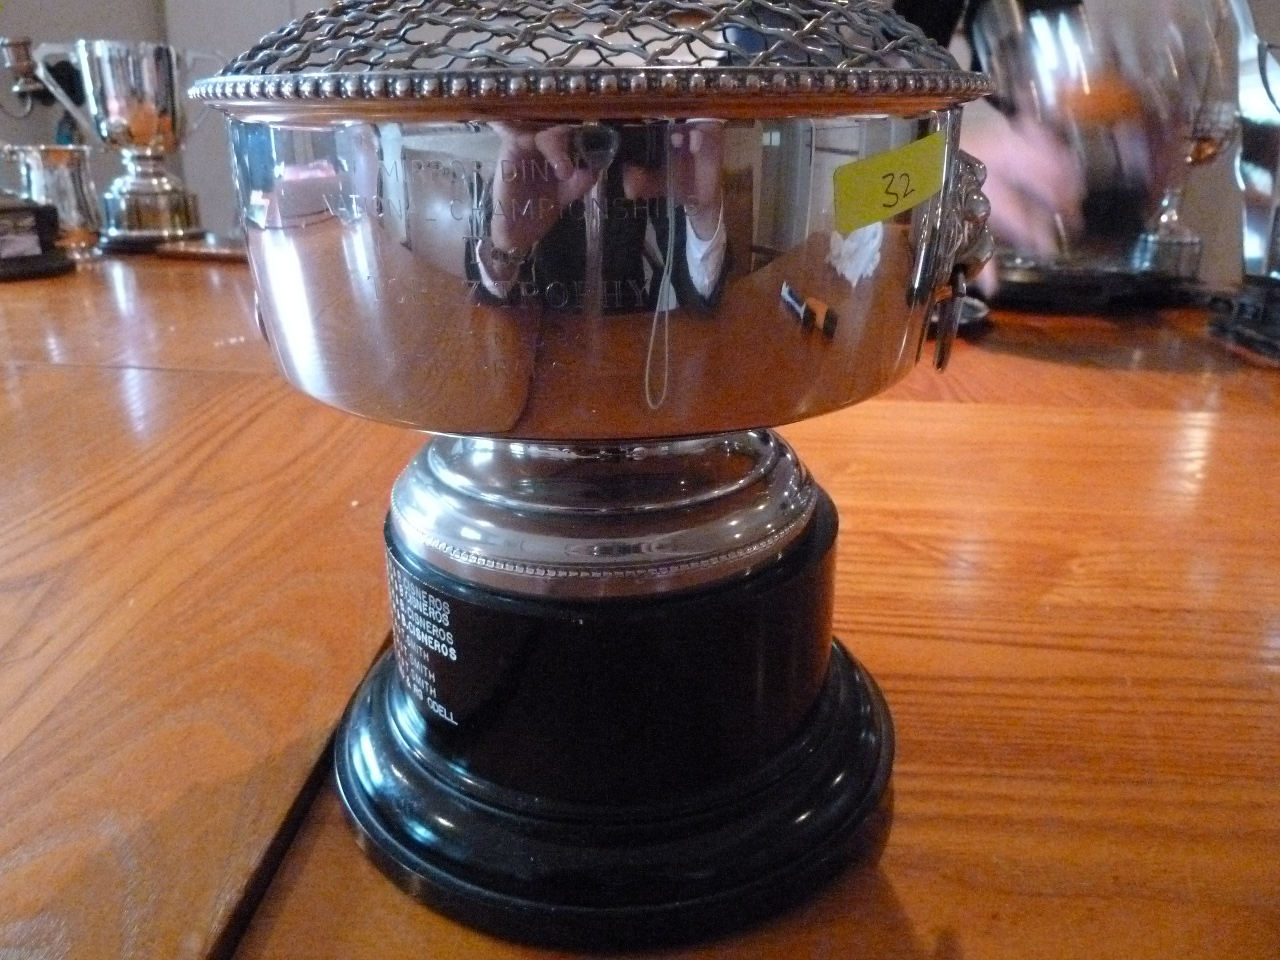 A silver rosebowl with a black plastic base